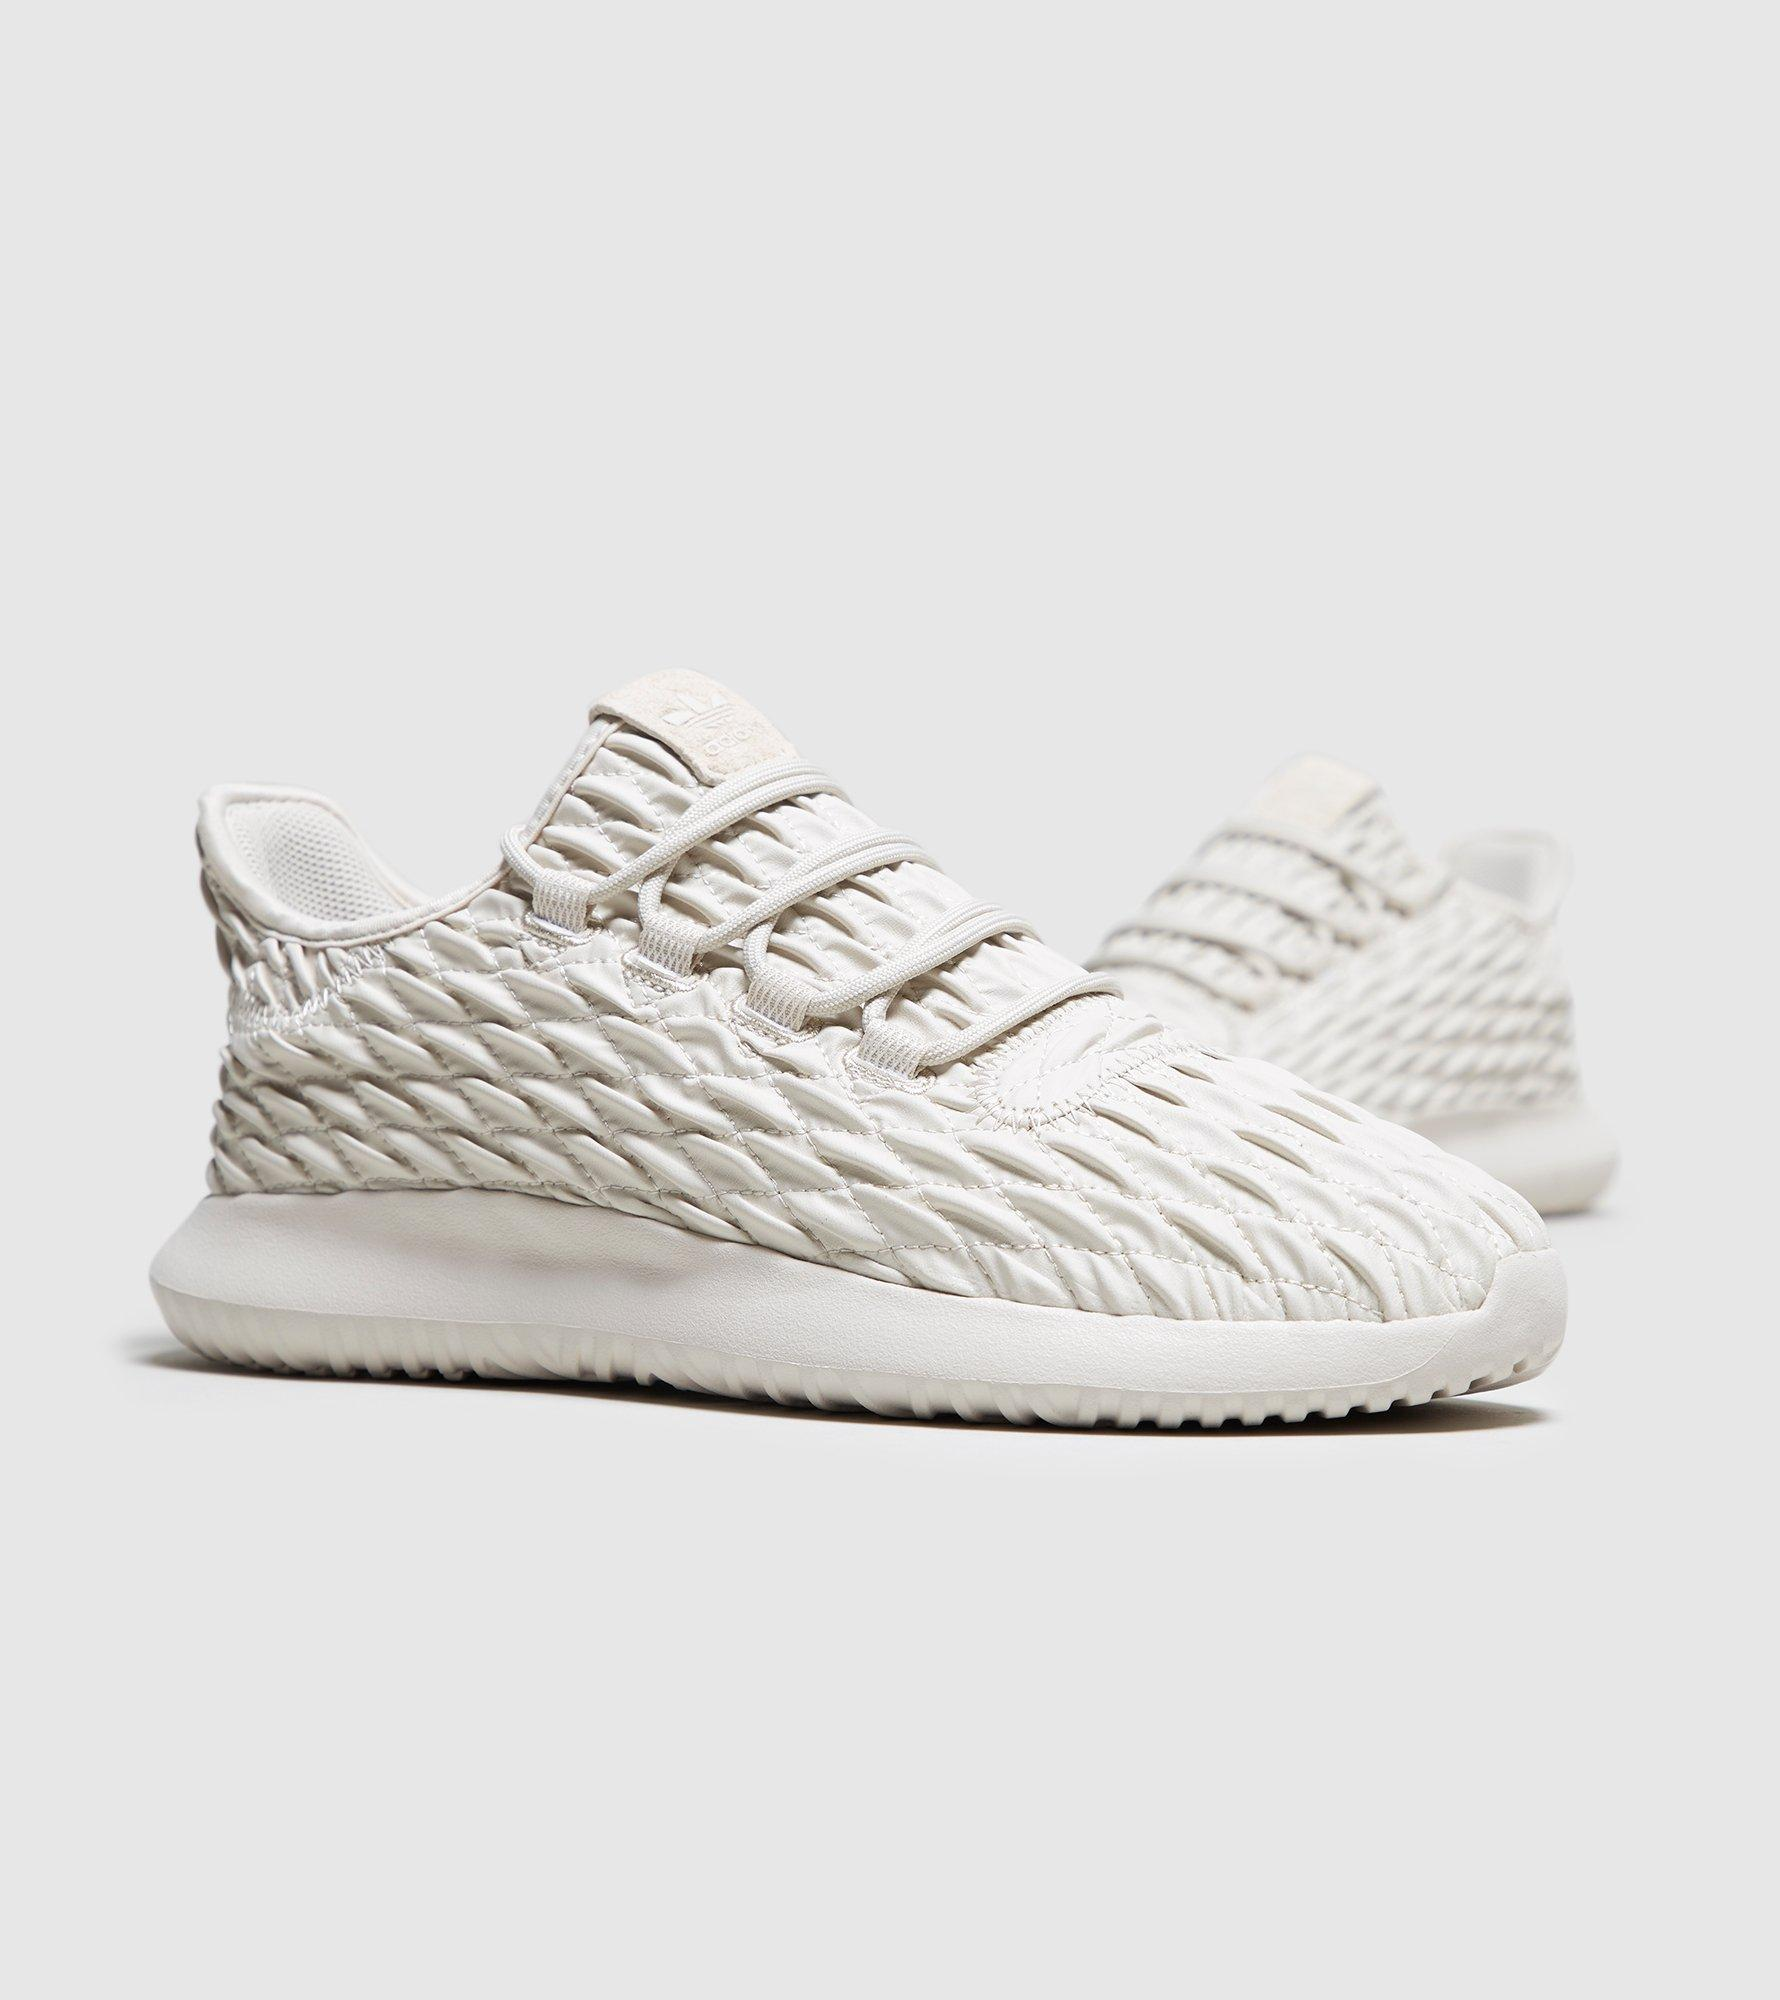 info for 24a5f a9cf9 Adidas Originals White Tubular Shadow Lux for men